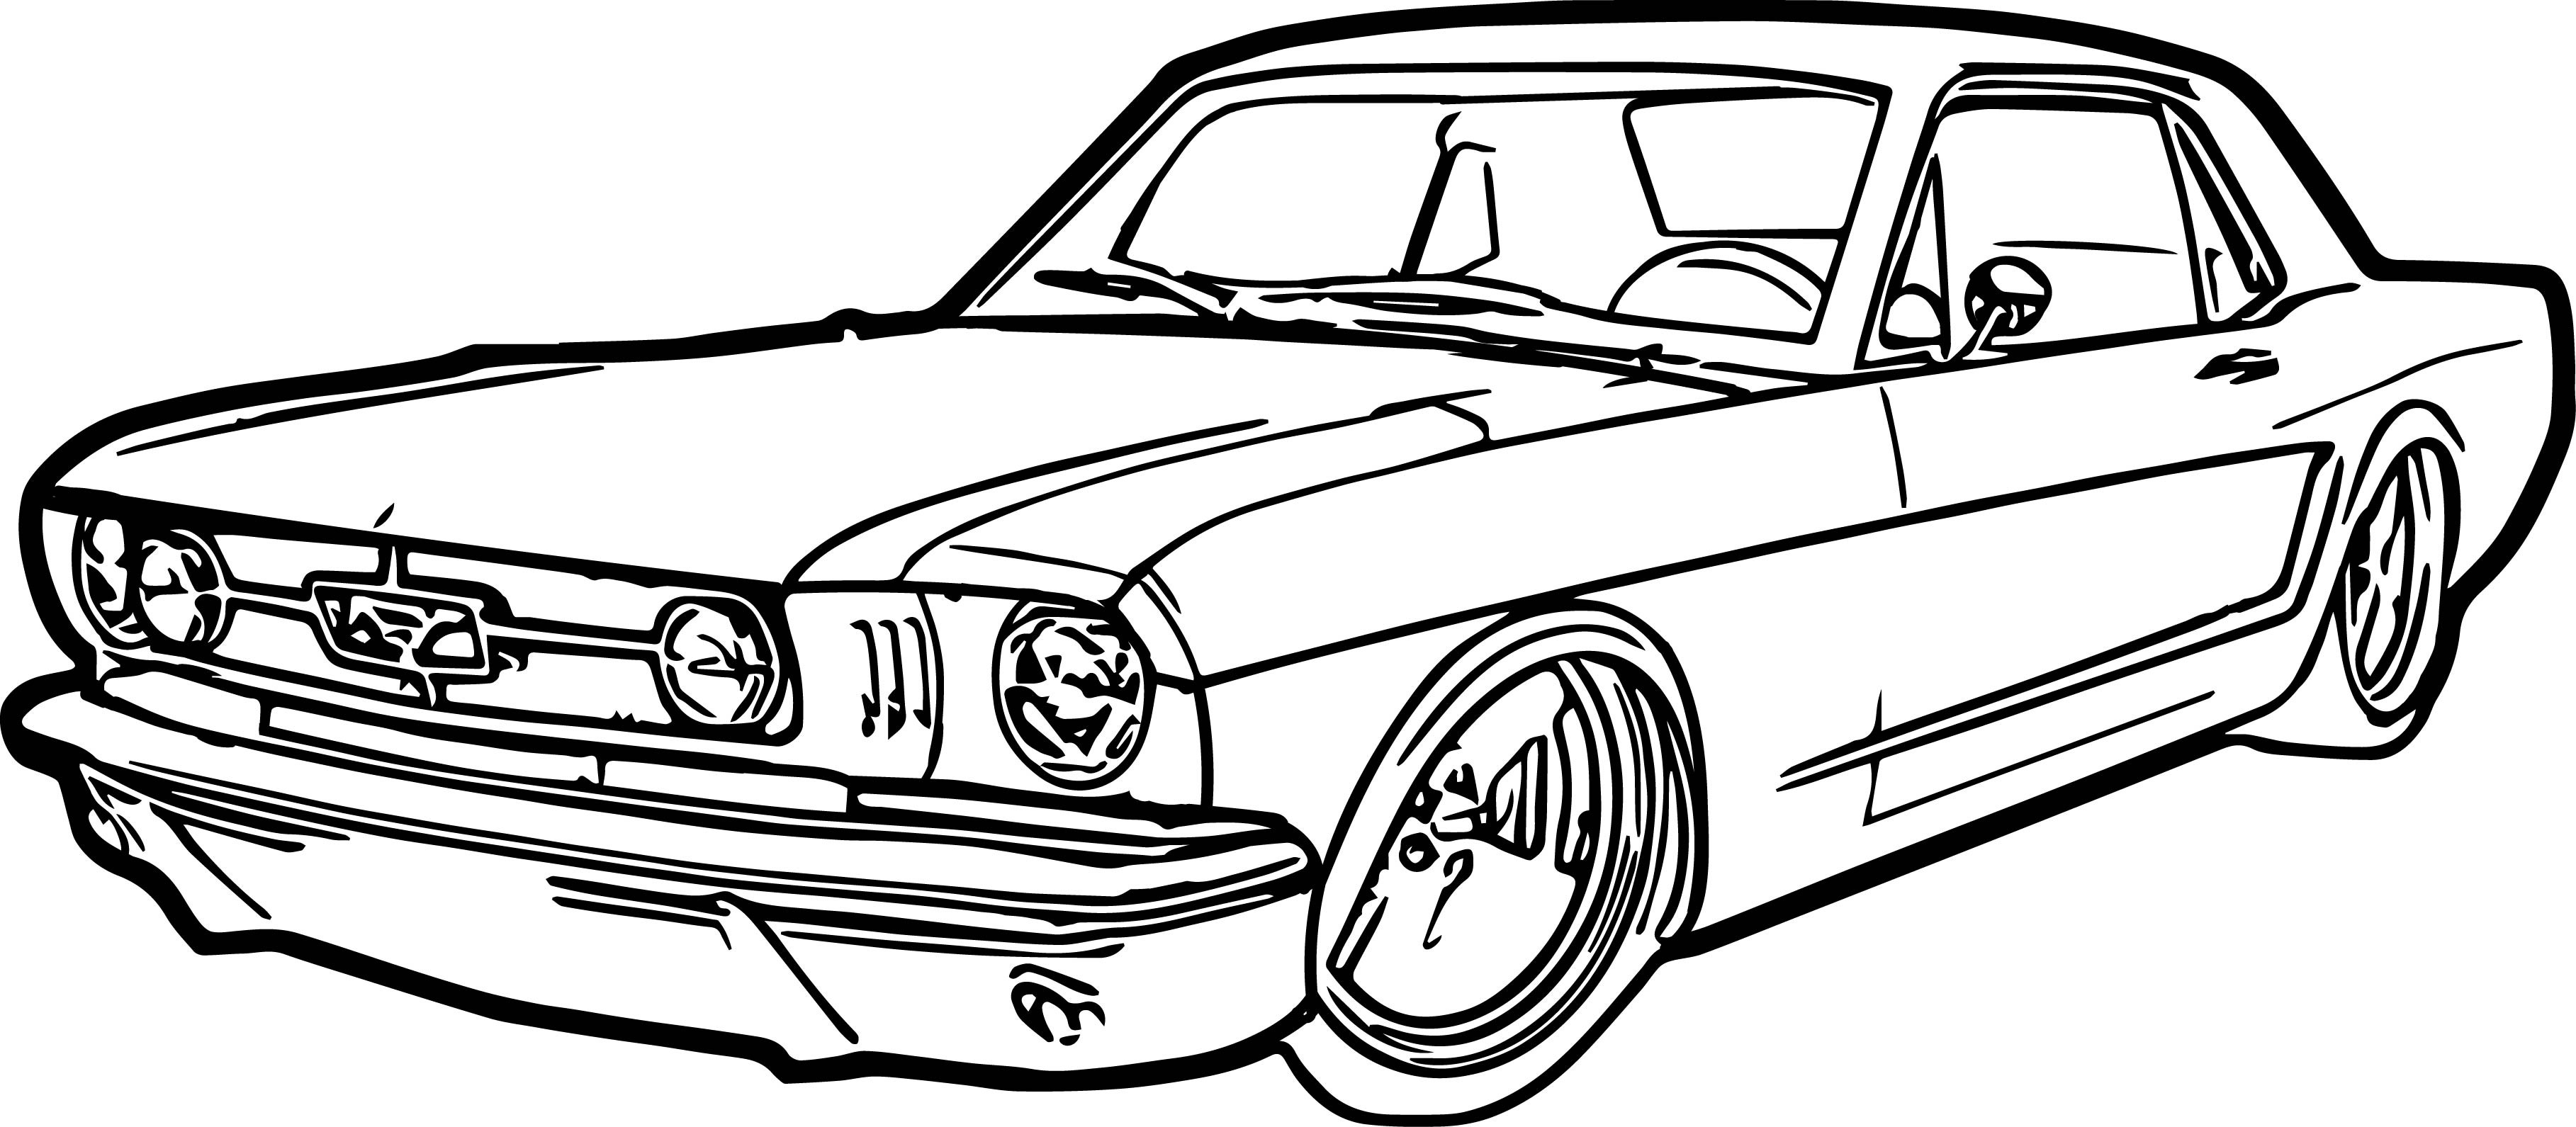 Ford Drawing At Getdrawings